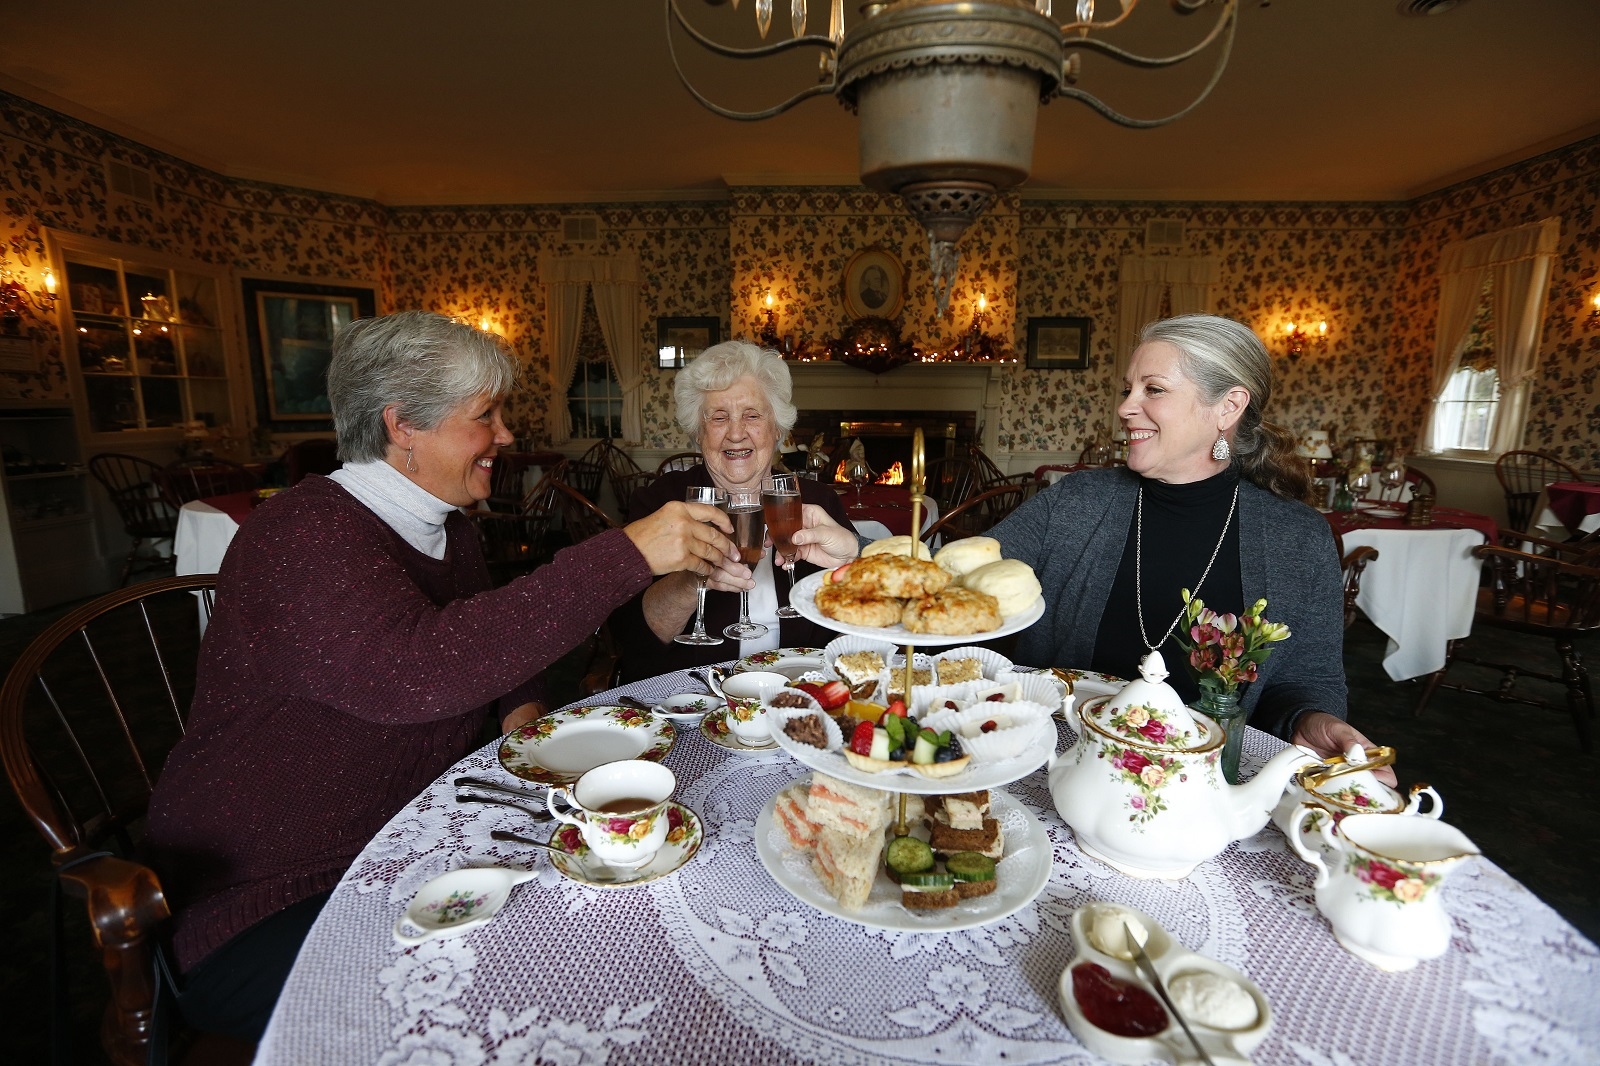 Sue Barth, left, and Lynn Minter, right, do a champagne toast with their mother, Marge Jamson, for her birthday during a tea at the Asa Ransom House. The tea is offered all year long, but is especially nice for gathering with friends and family around the holidays. (Mark Mulville/The Buffalo News)